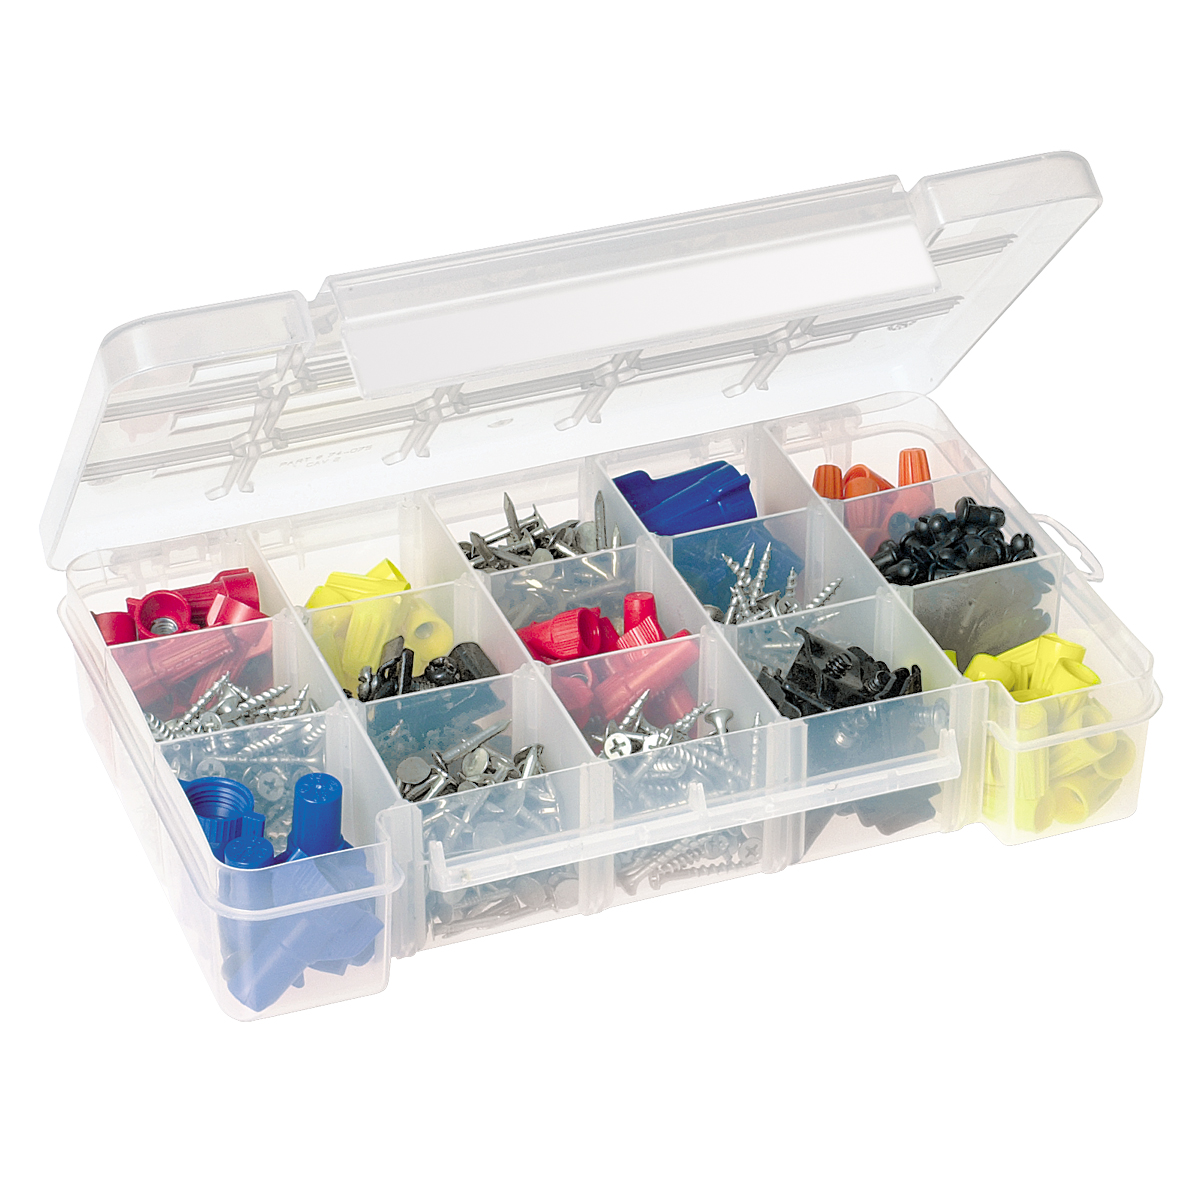 small boxes organizers - Small Storage Containers